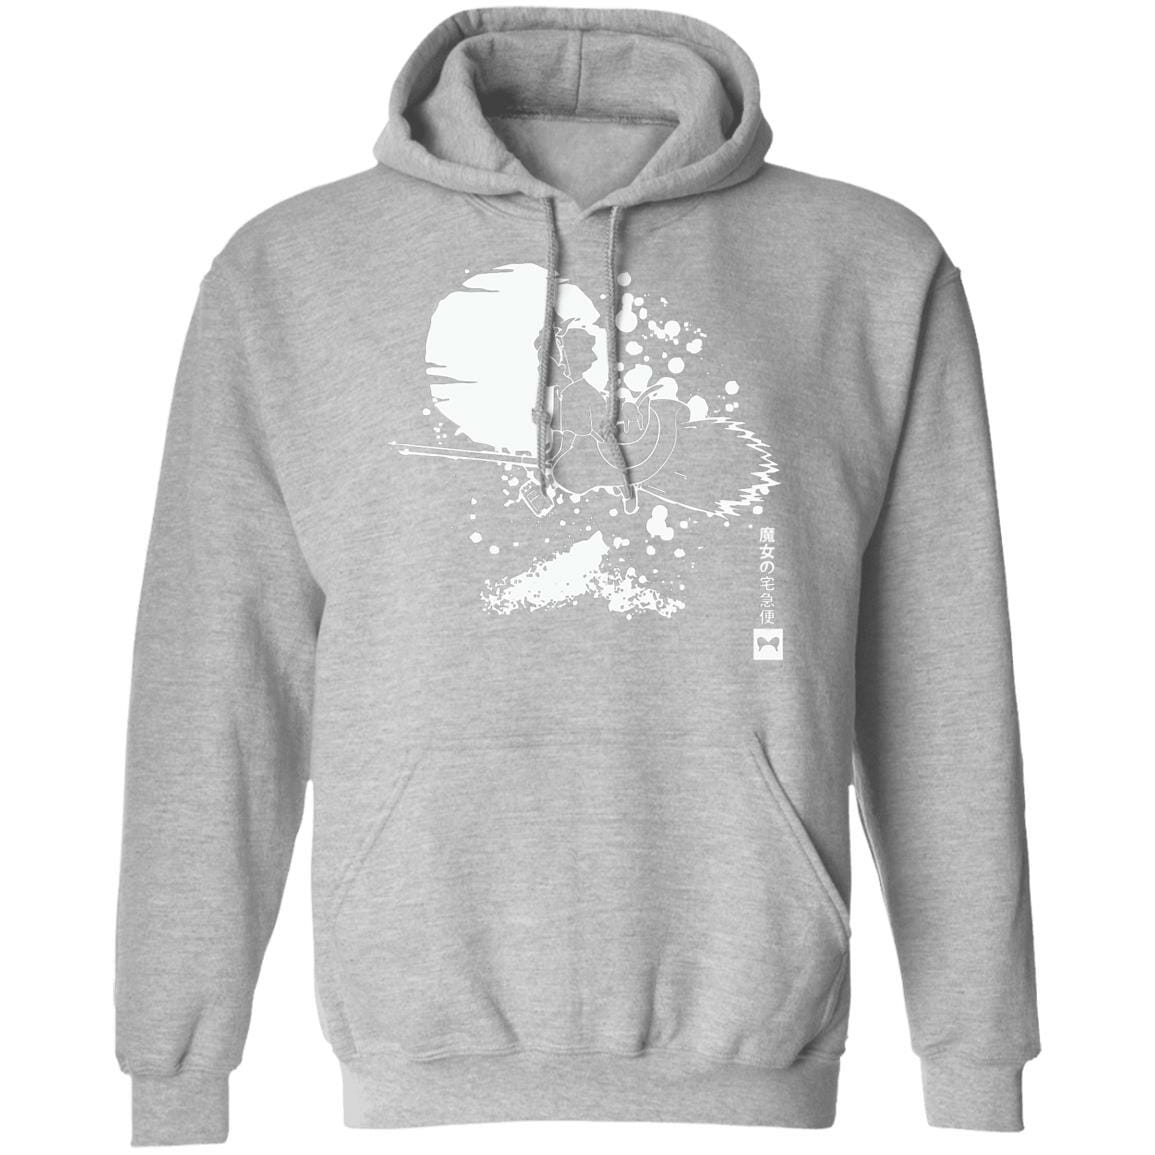 Kiki's Delivery Service – Flying in the night Hoodie Unisex